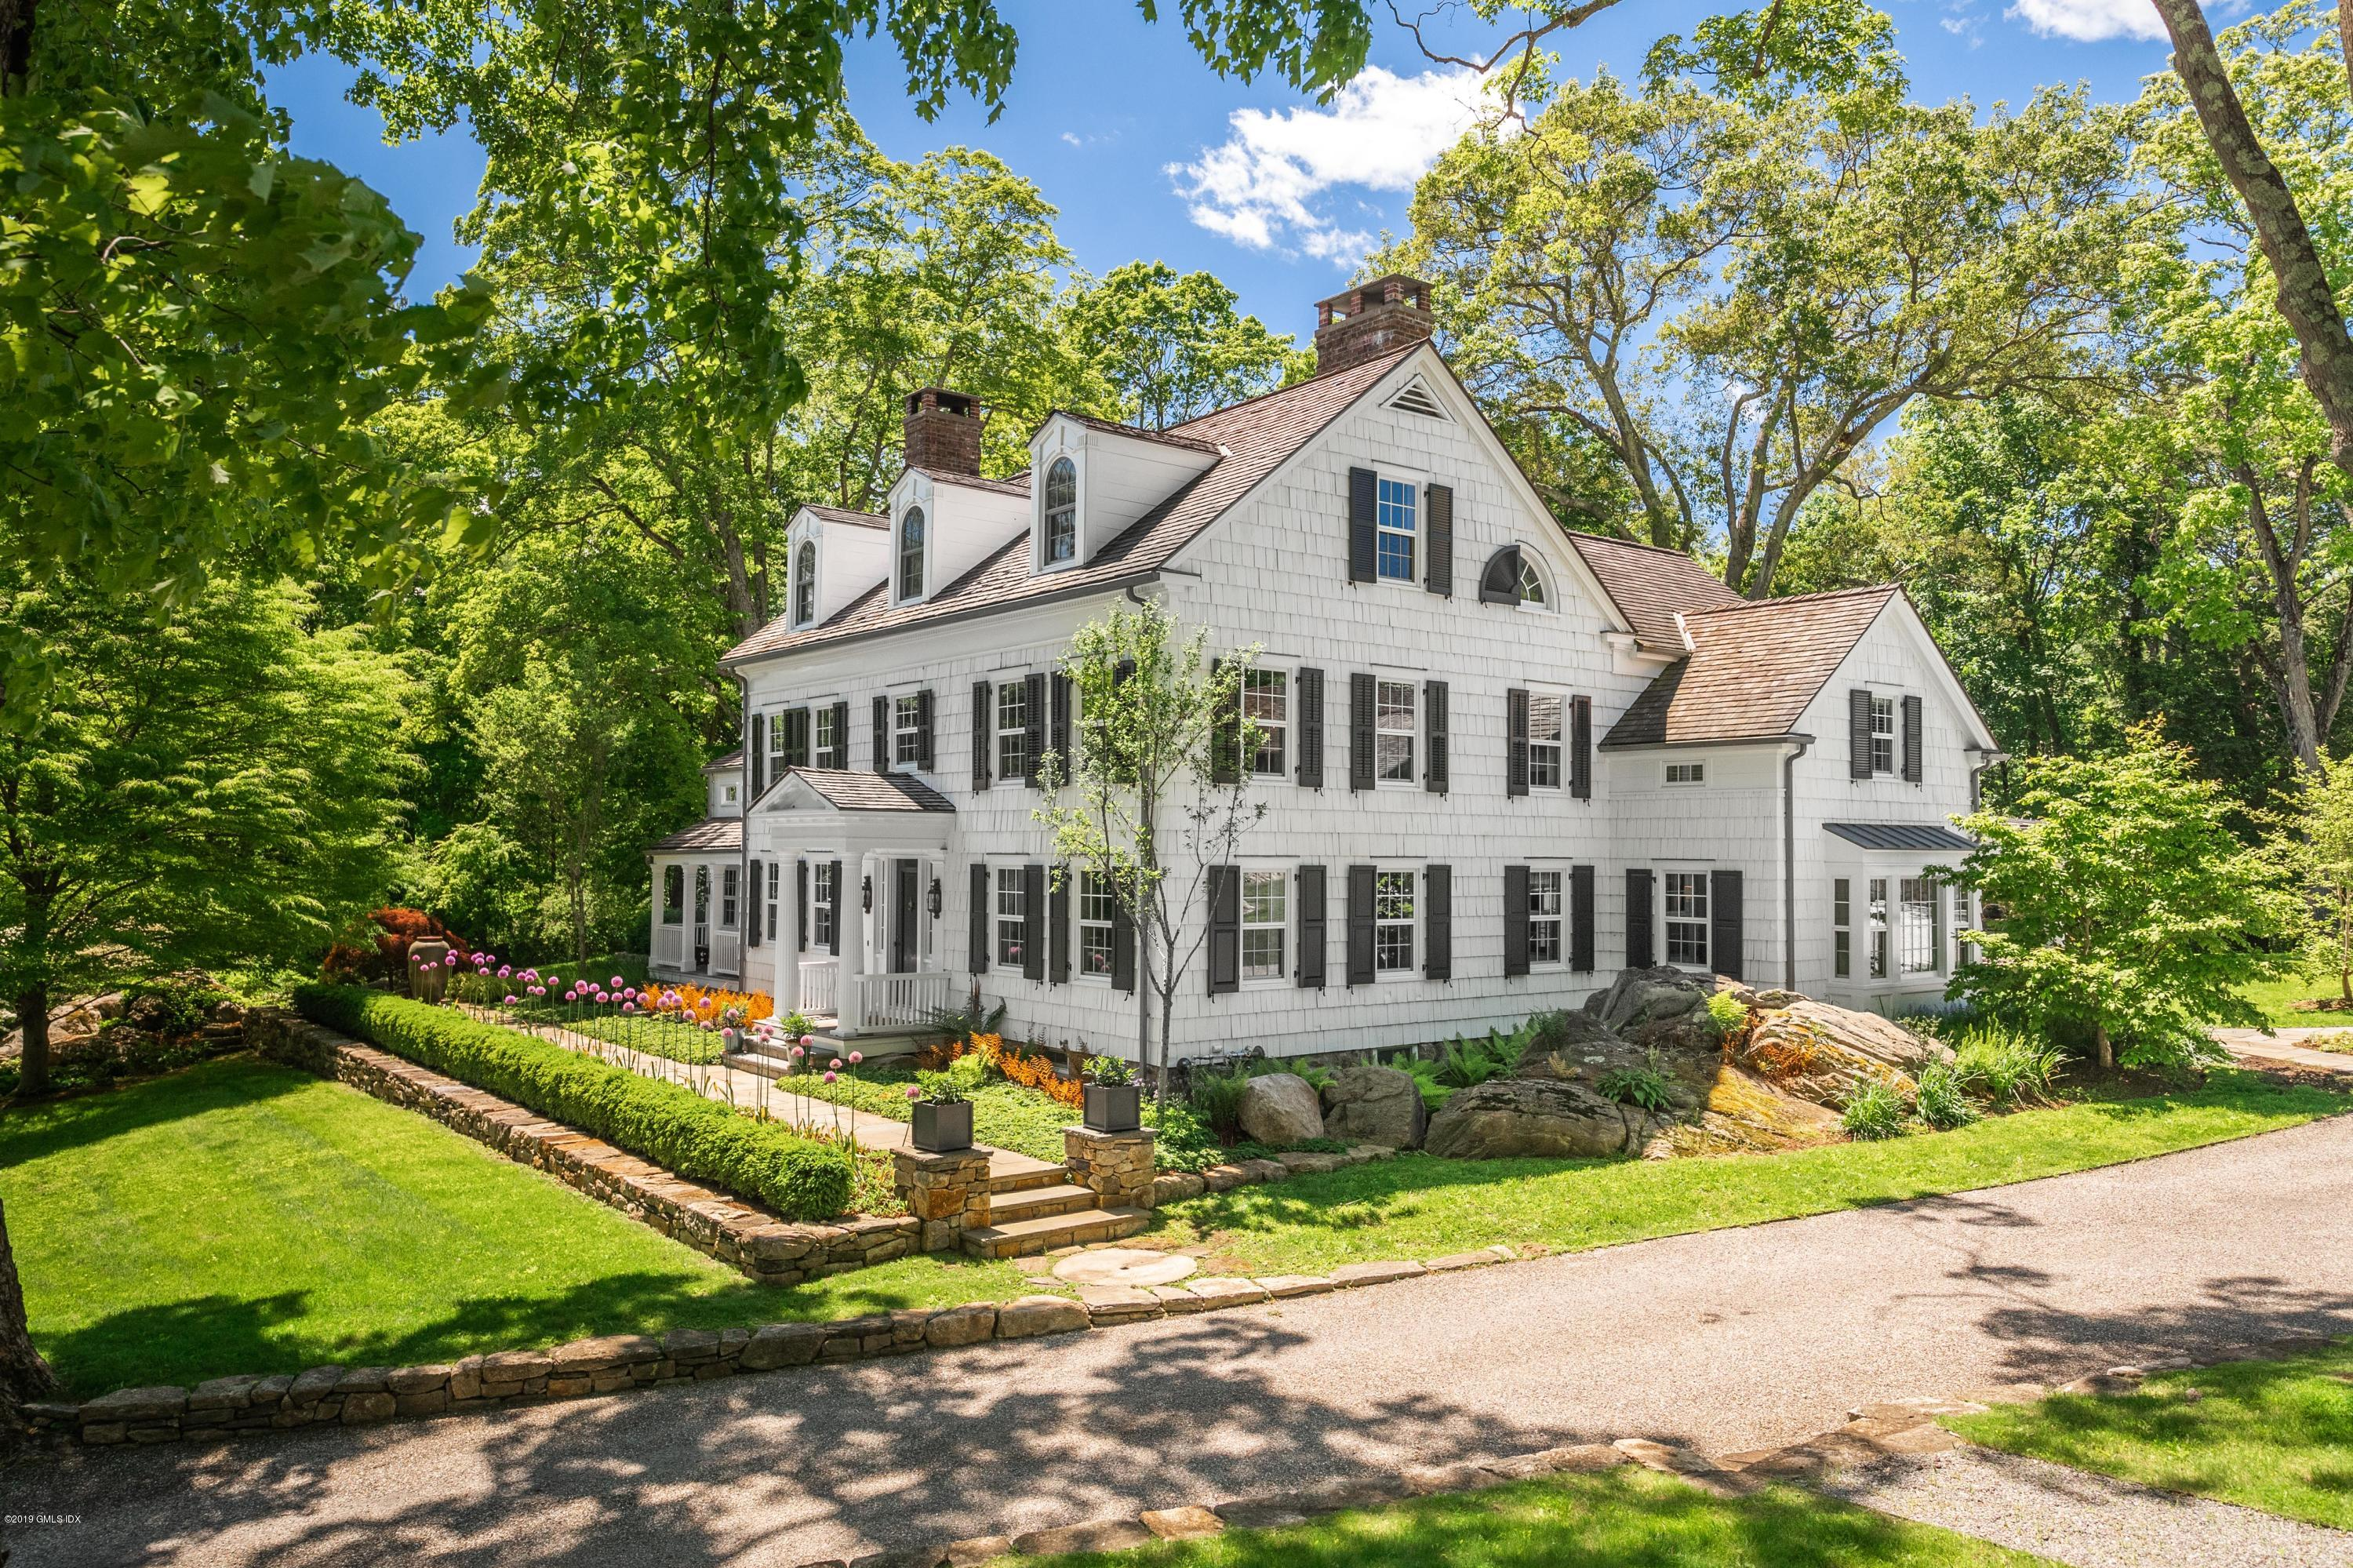 68 Doubling Road,Greenwich,Connecticut 06830,5 Bedrooms Bedrooms,4 BathroomsBathrooms,Single family,Doubling,106762